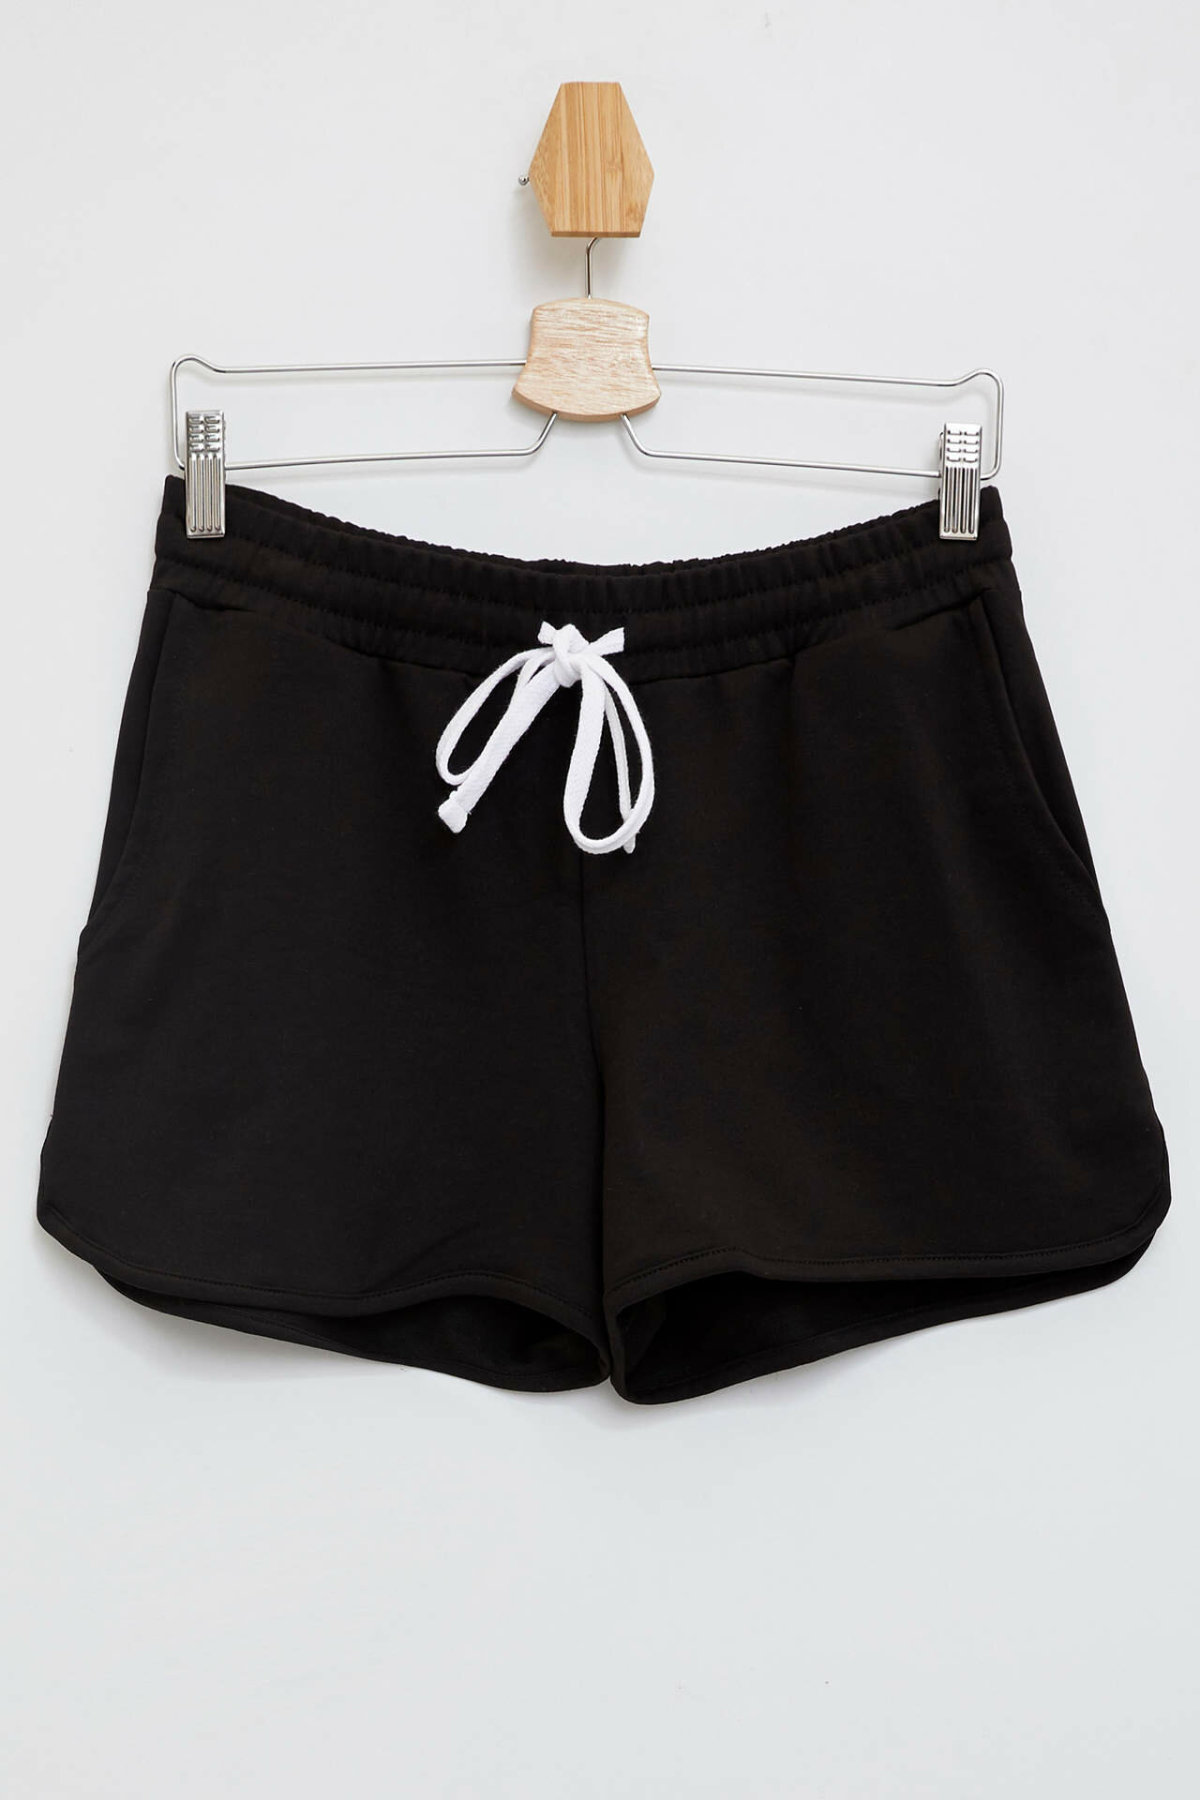 DeFacto Woman Summer Black Shorts Women Lace-up Mini Short Bottoms Female Shorts-M5045AZ19HS